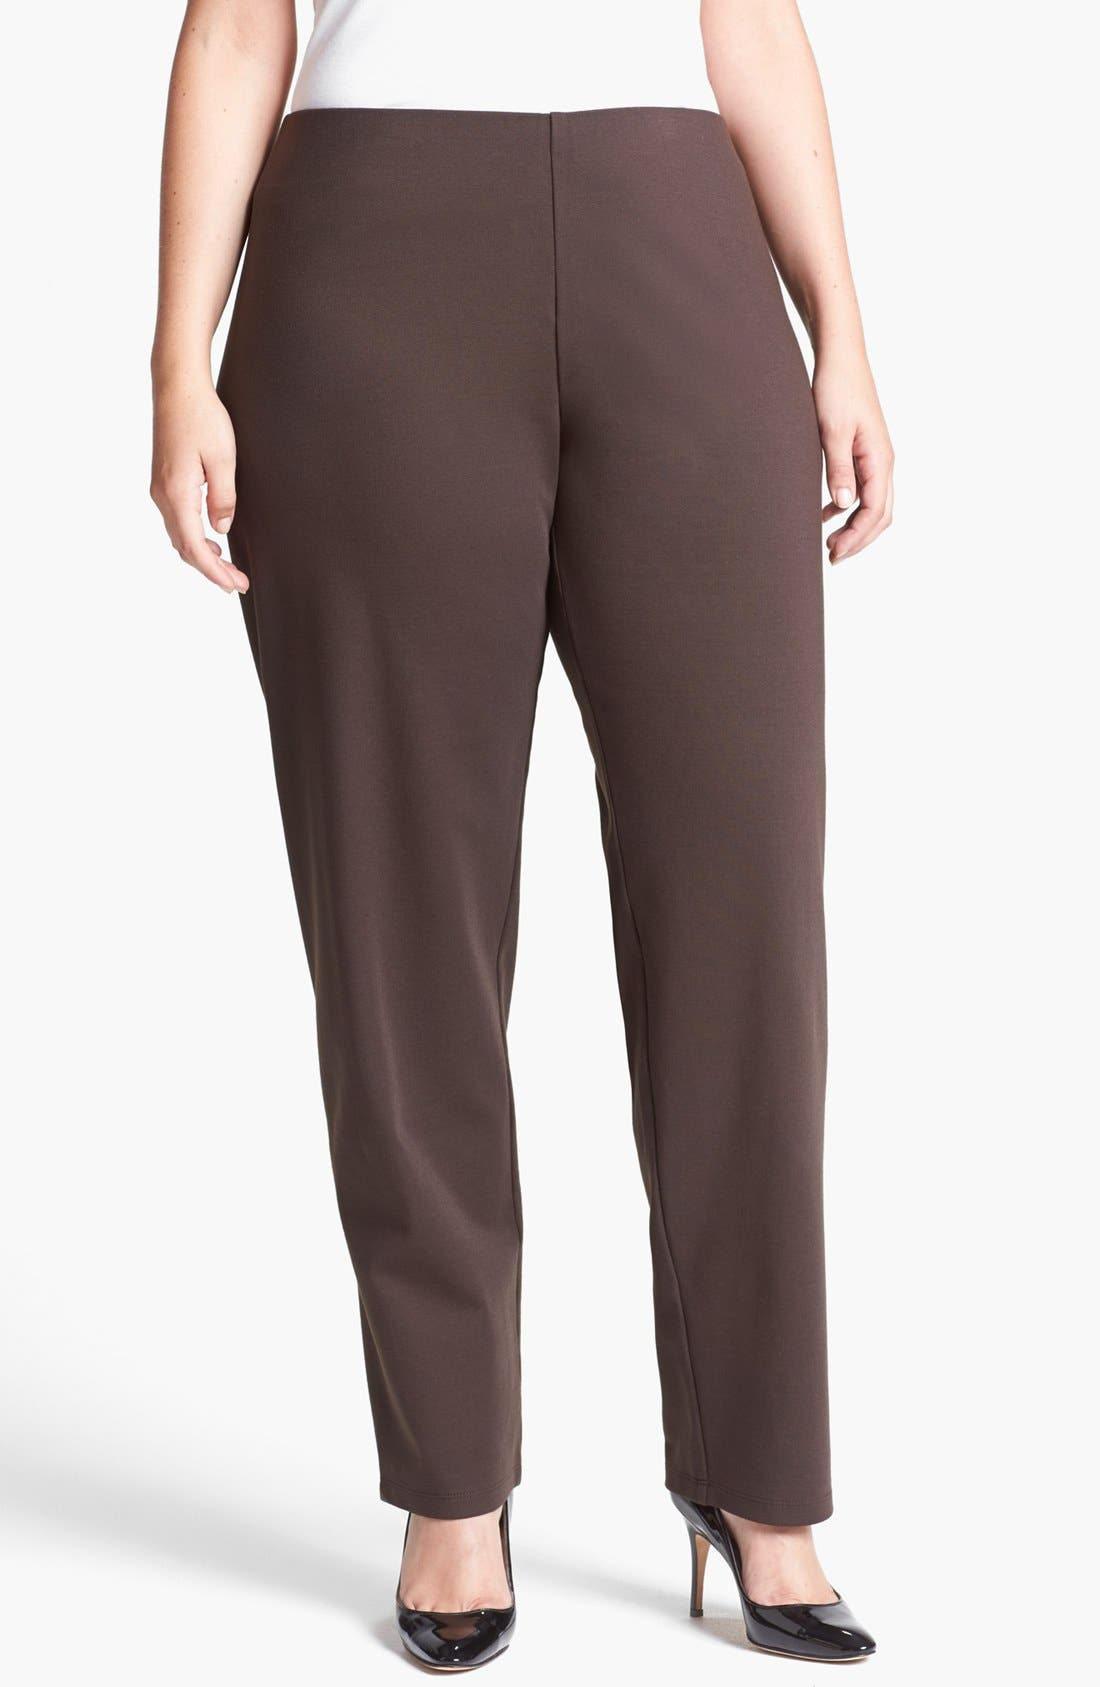 Alternate Image 1 Selected - Eileen Fisher Stretch Knit Pants (Plus Size)